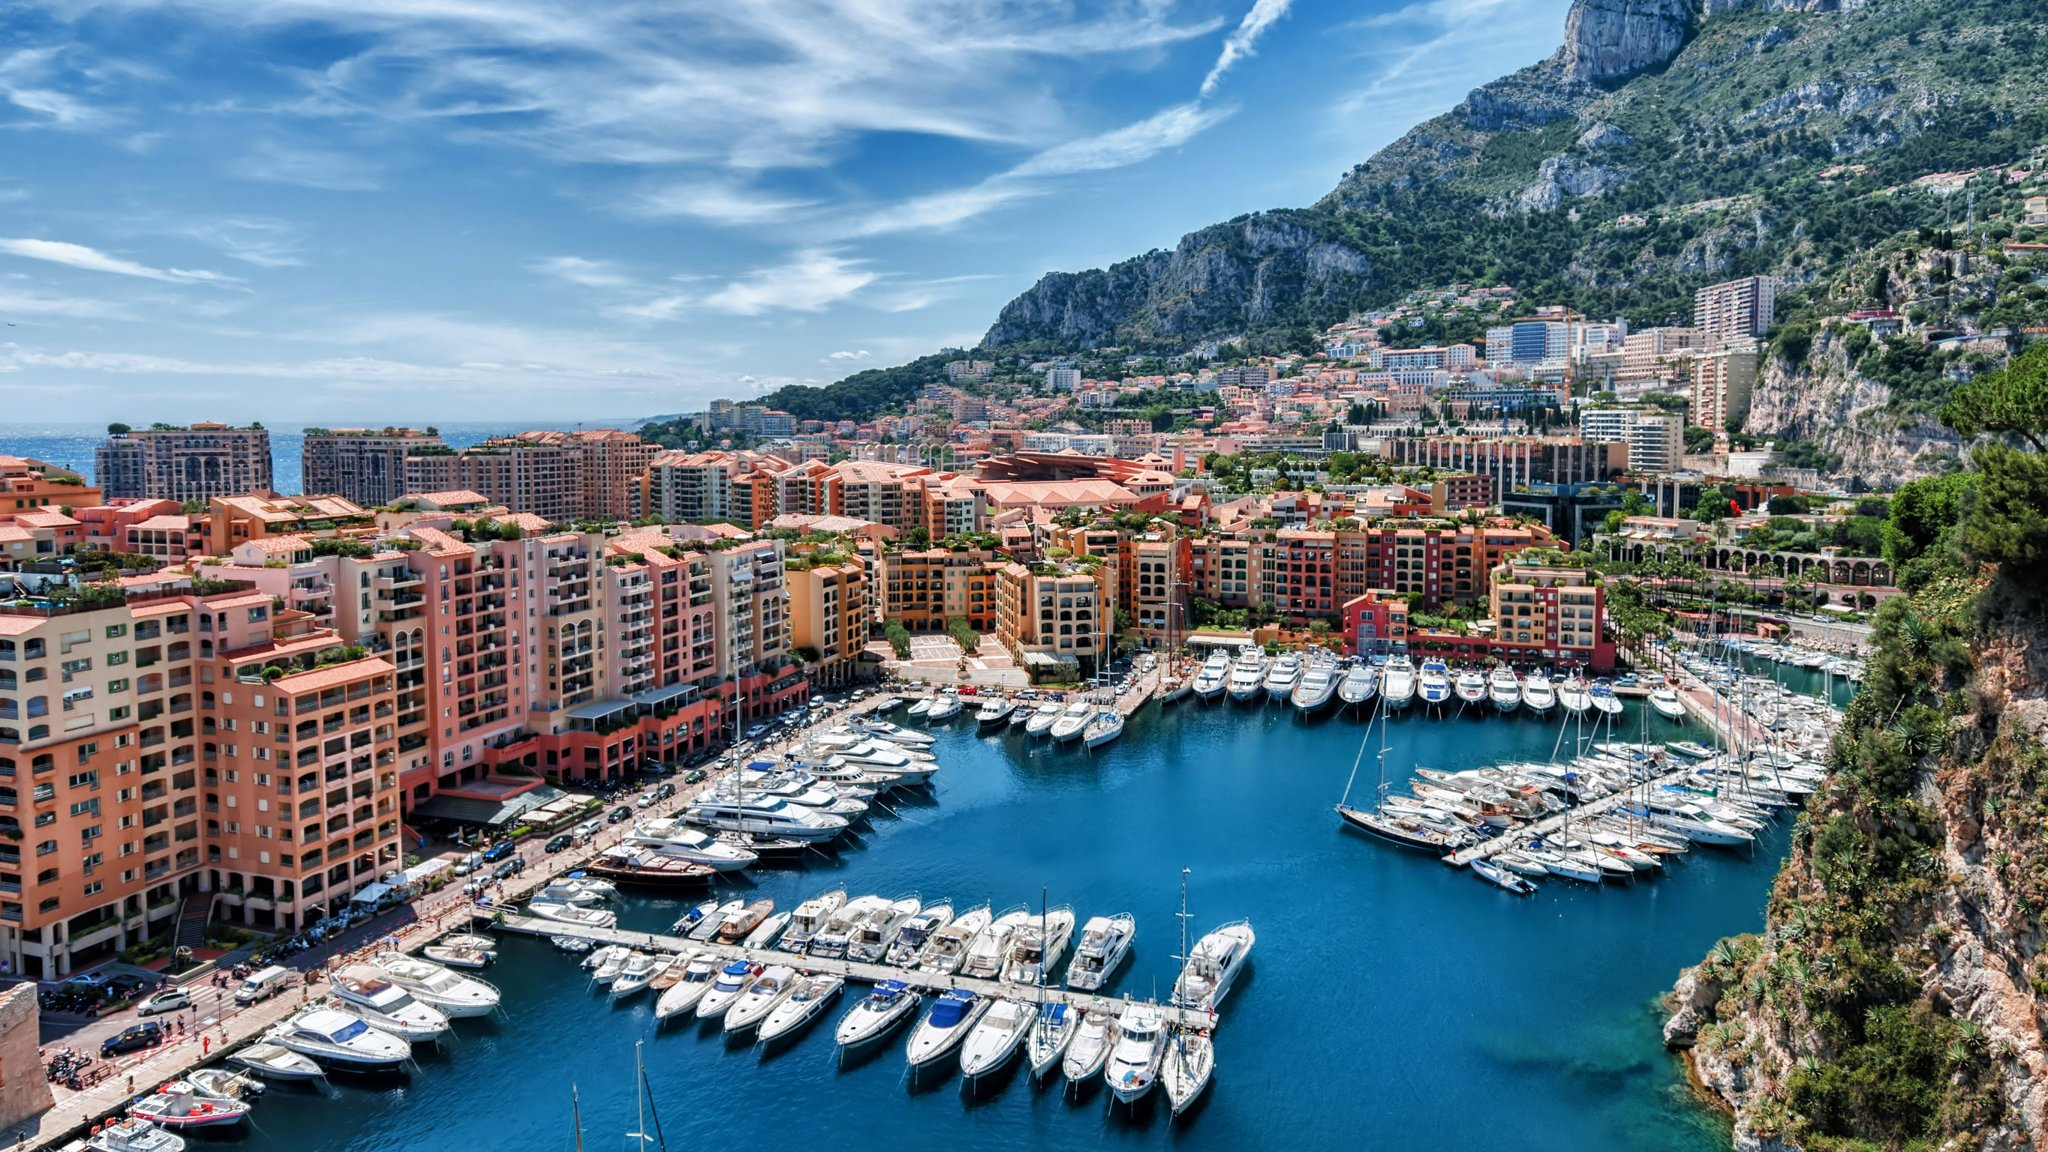 HSBC to wind down Monaco private bank   Financial Times